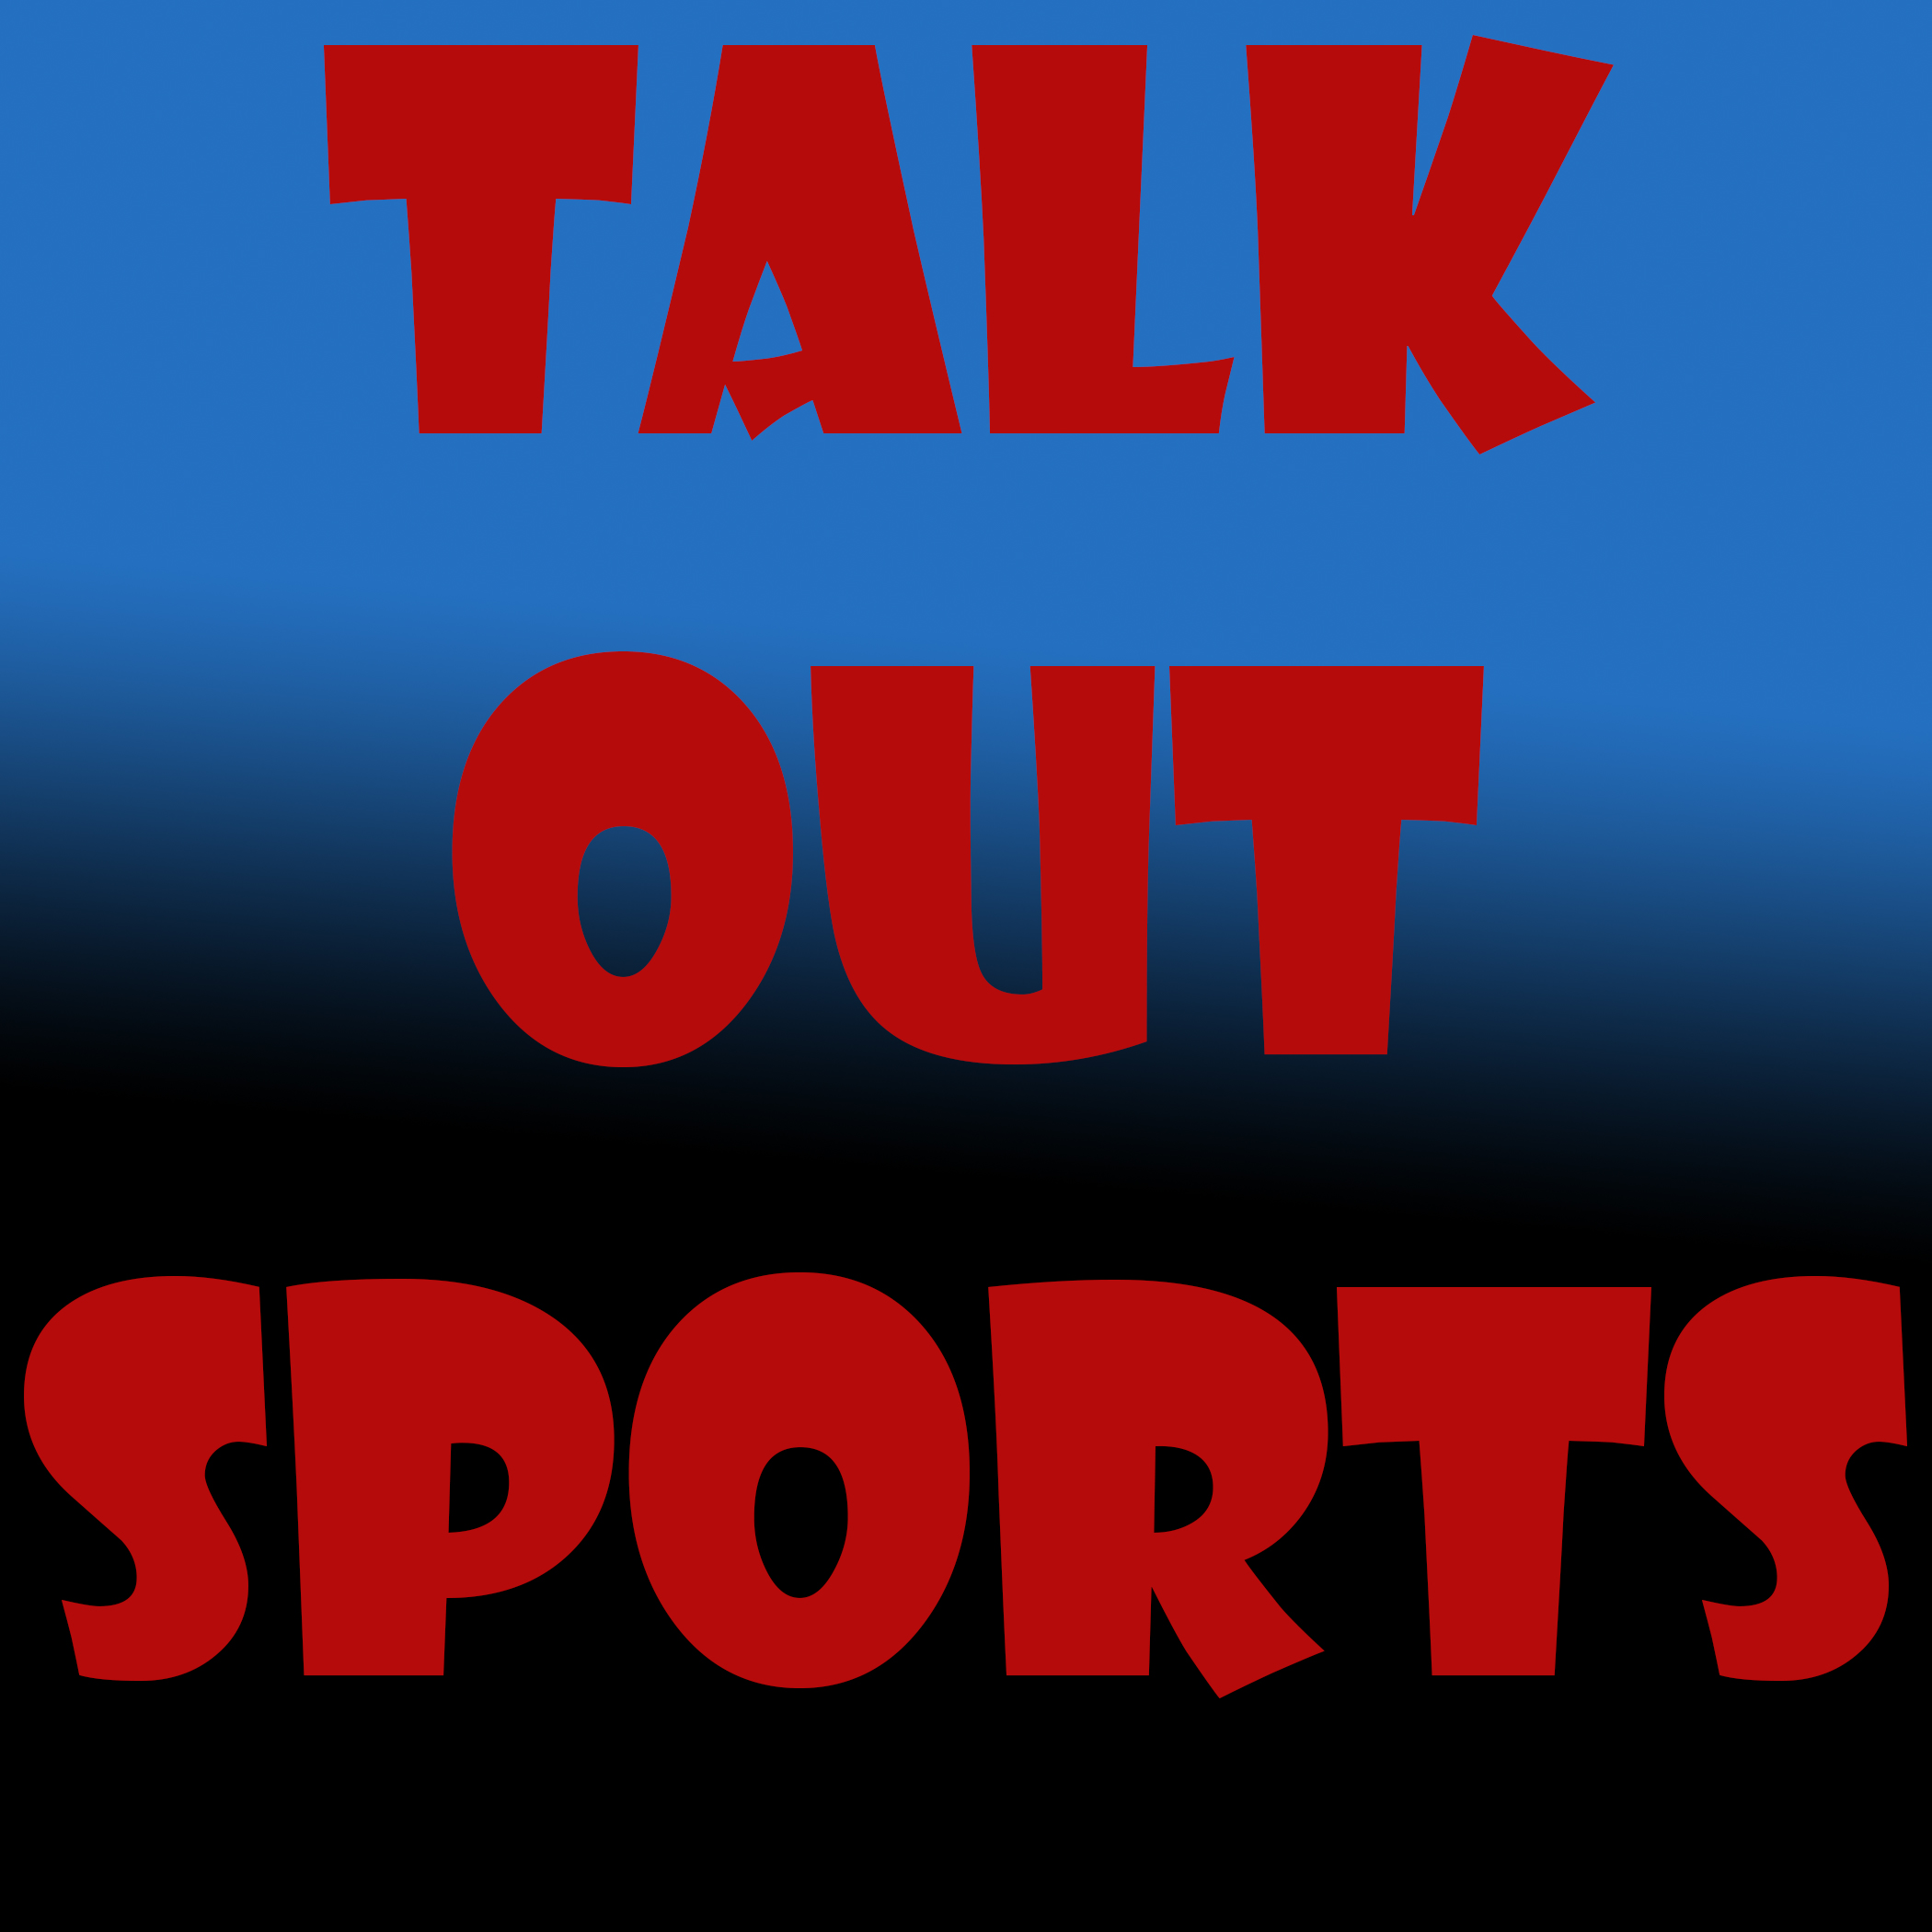 Talk Out Sports